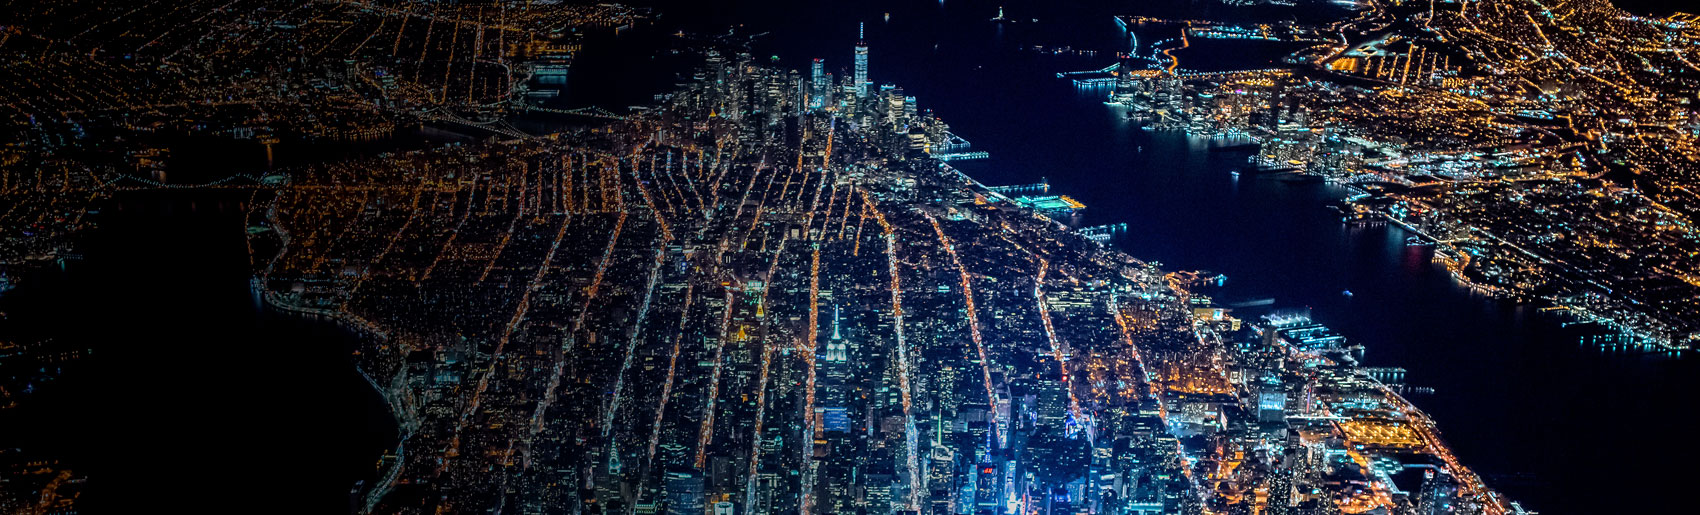 A nighttime aerial view of New York City.